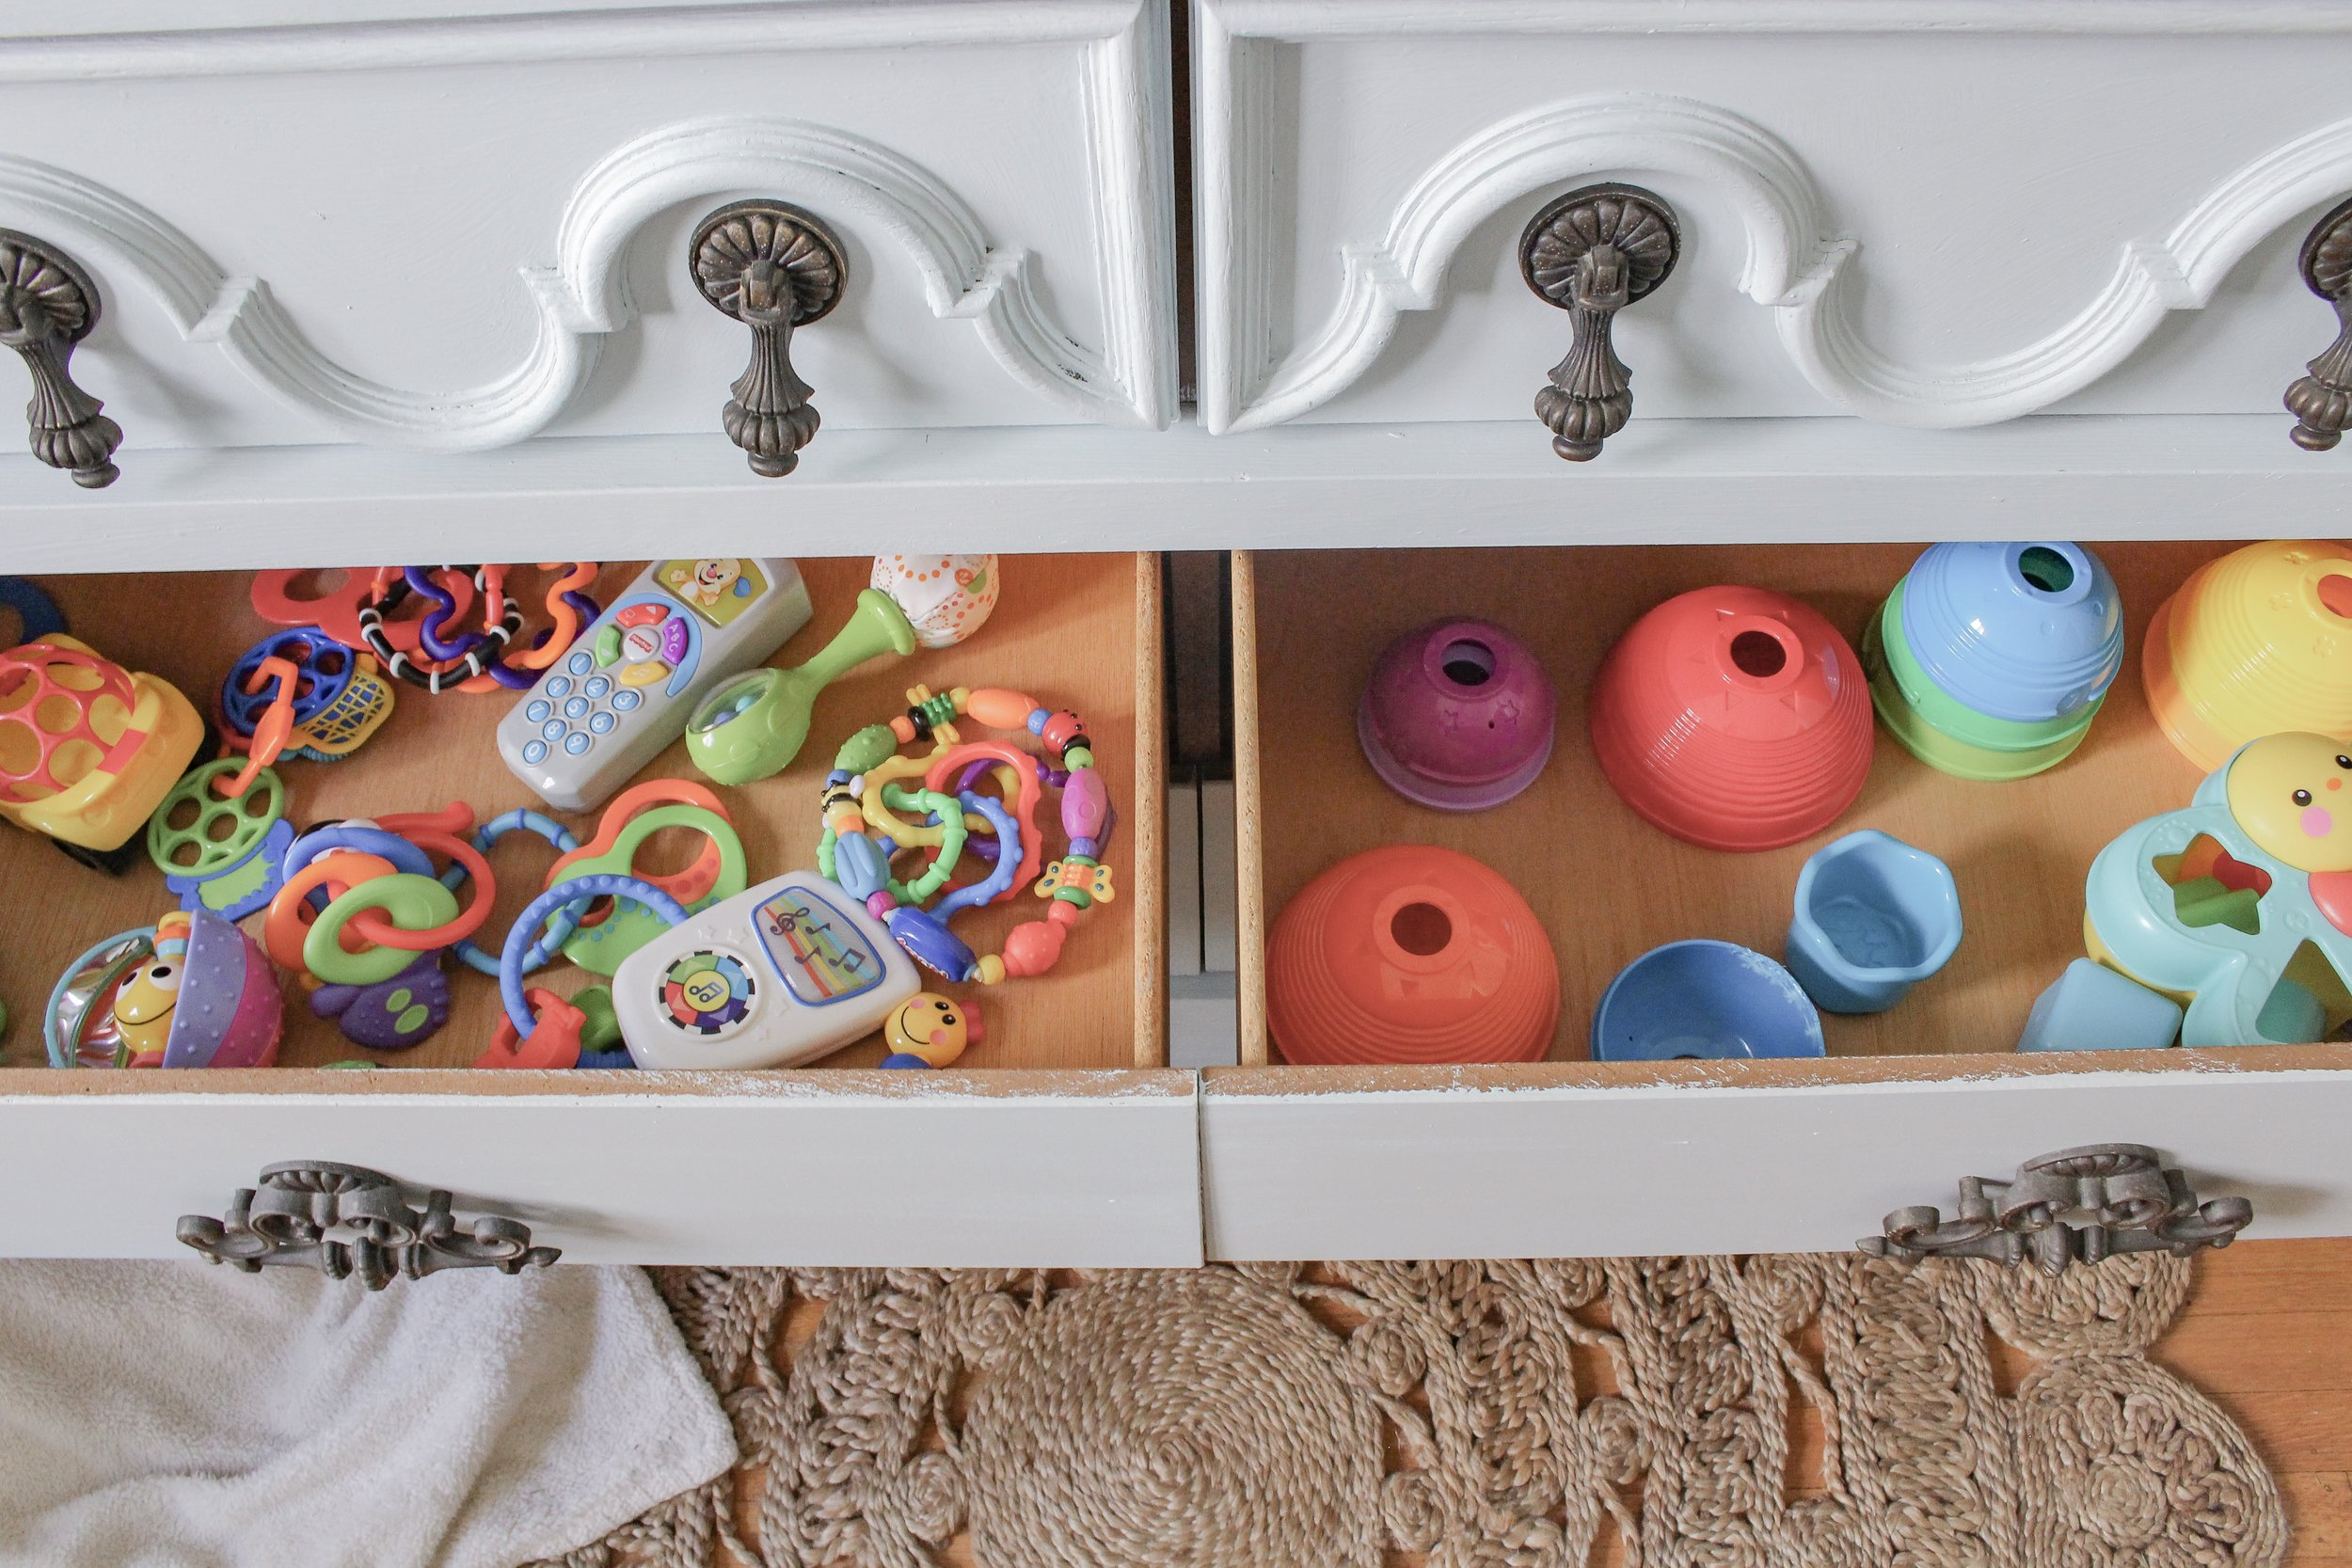 Toy drawers